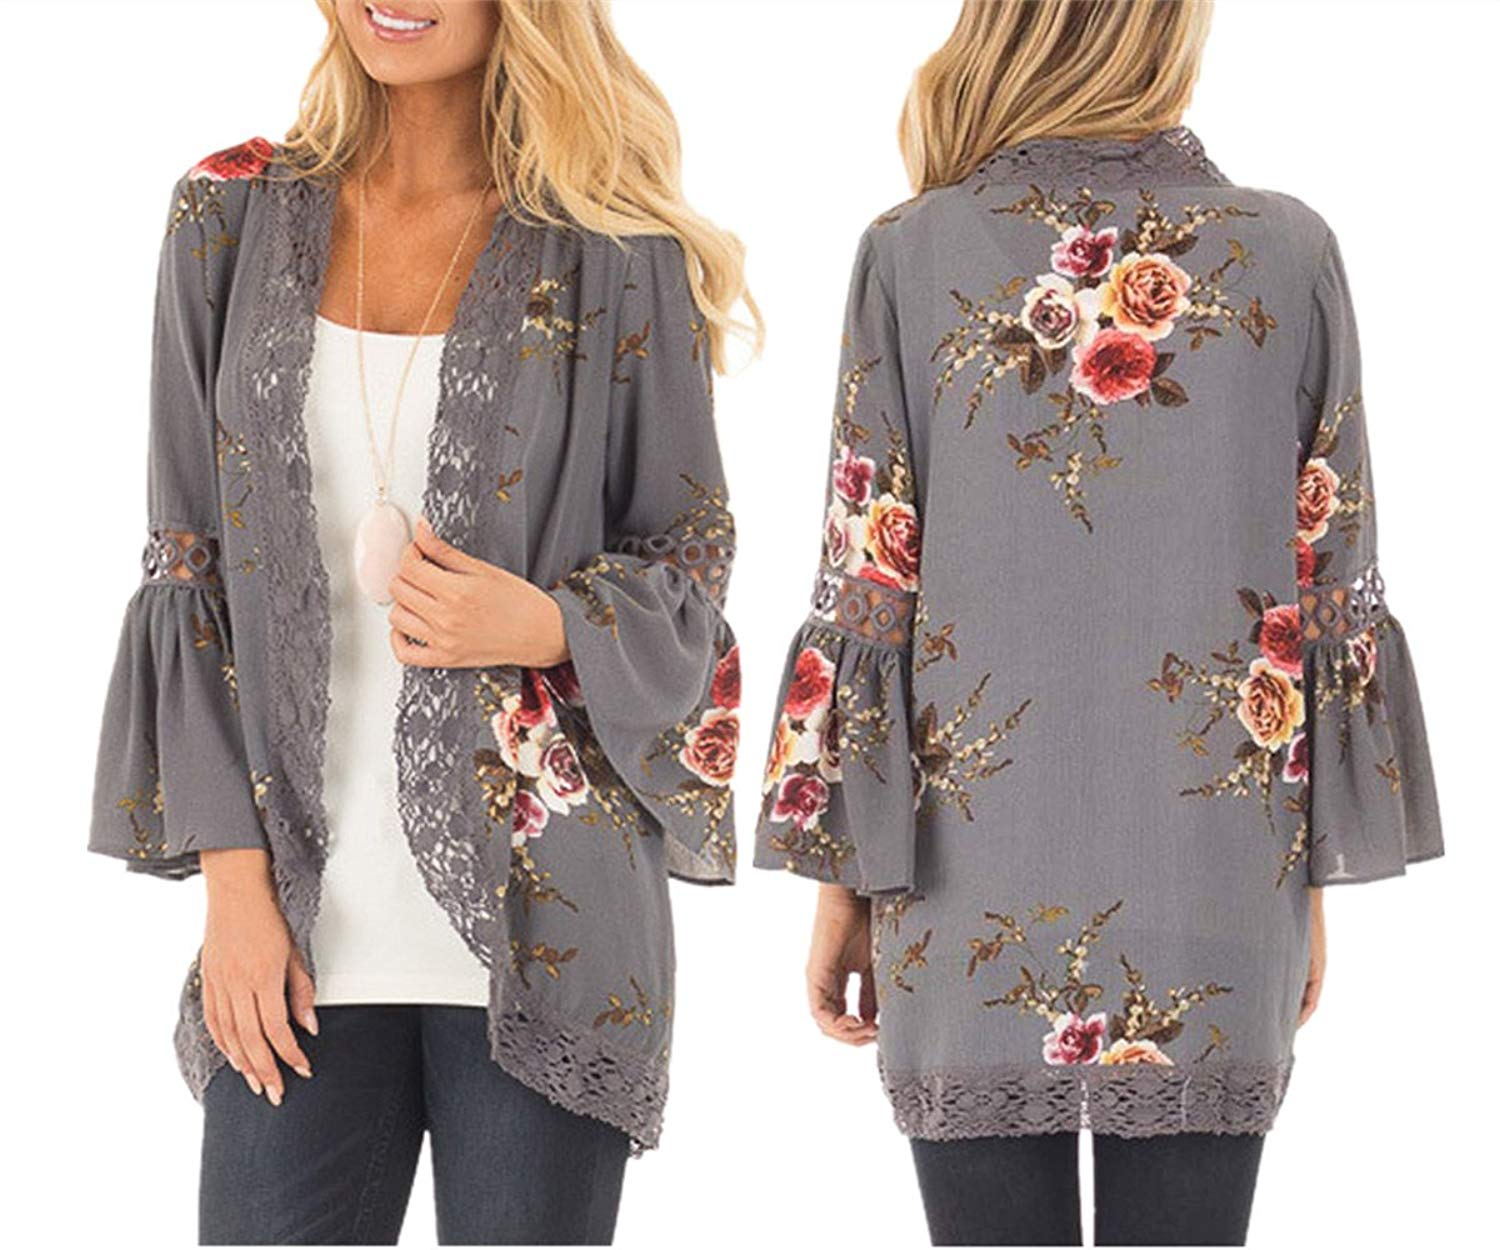 Womens Floral Kimono Open Front Lacework Cardigan Blouse Summer Casual Crochet Cover up Shirt